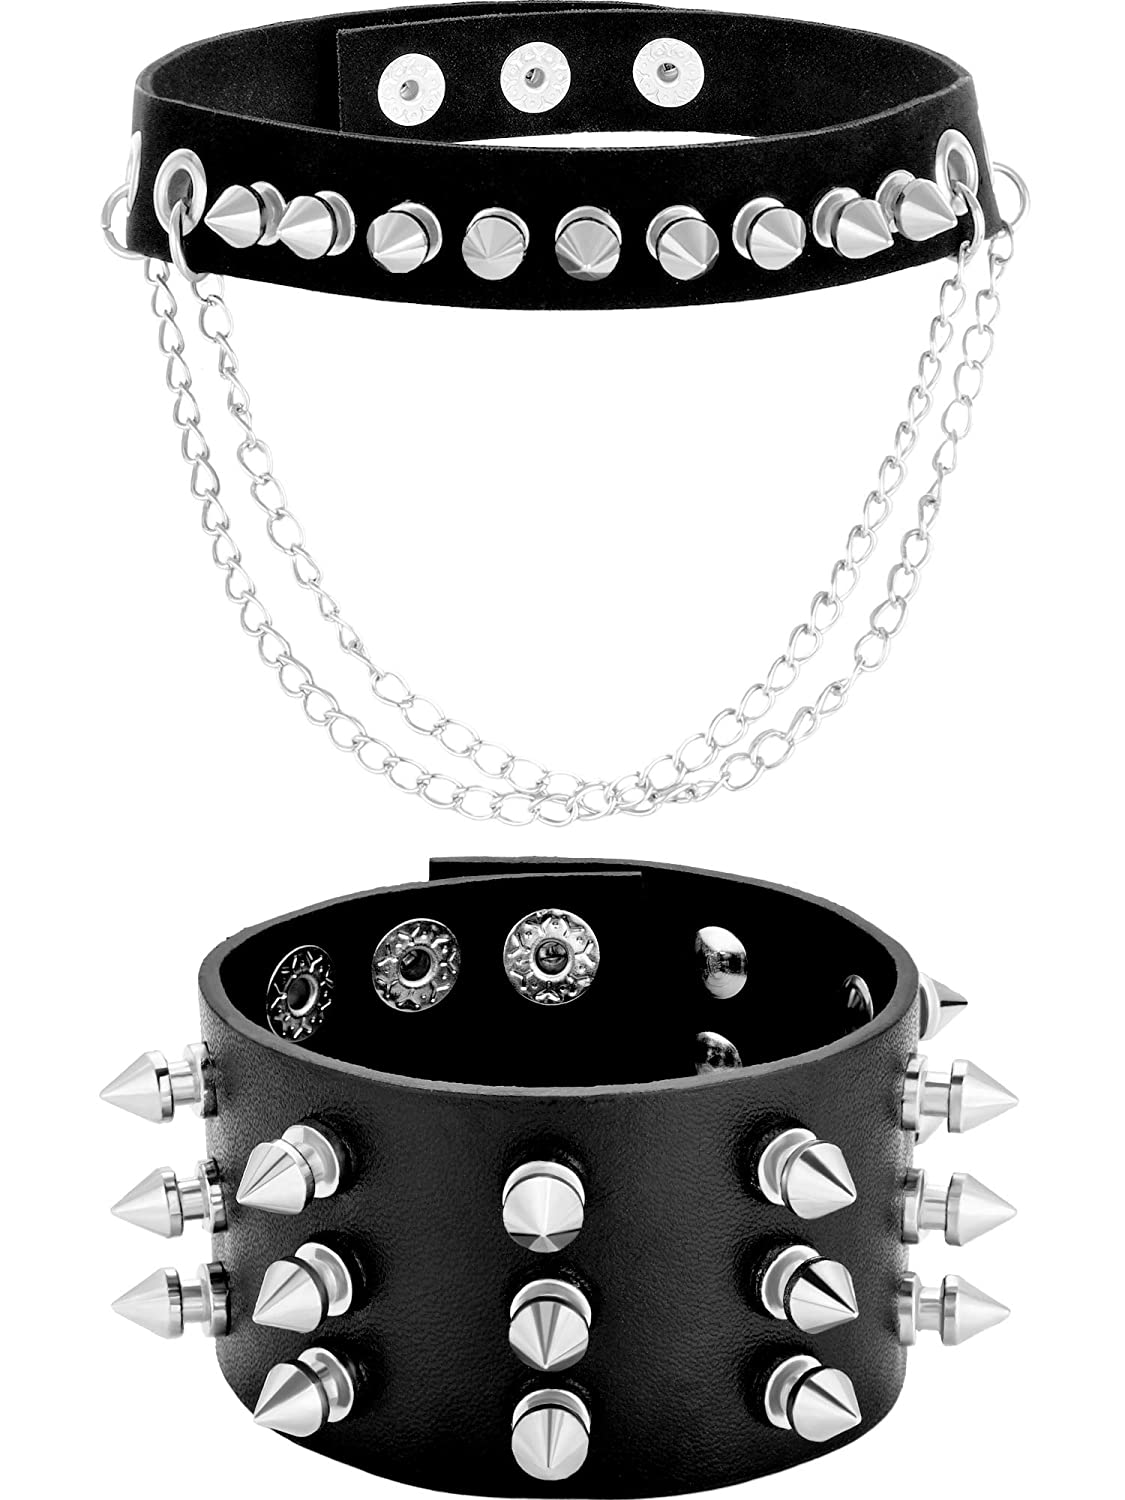 Chuangdi Black Goth Punk Necklace Studded Collar Choker and Metal Spike Bracelet Wide Strap for Men and Women Chuangdi-Choker-1